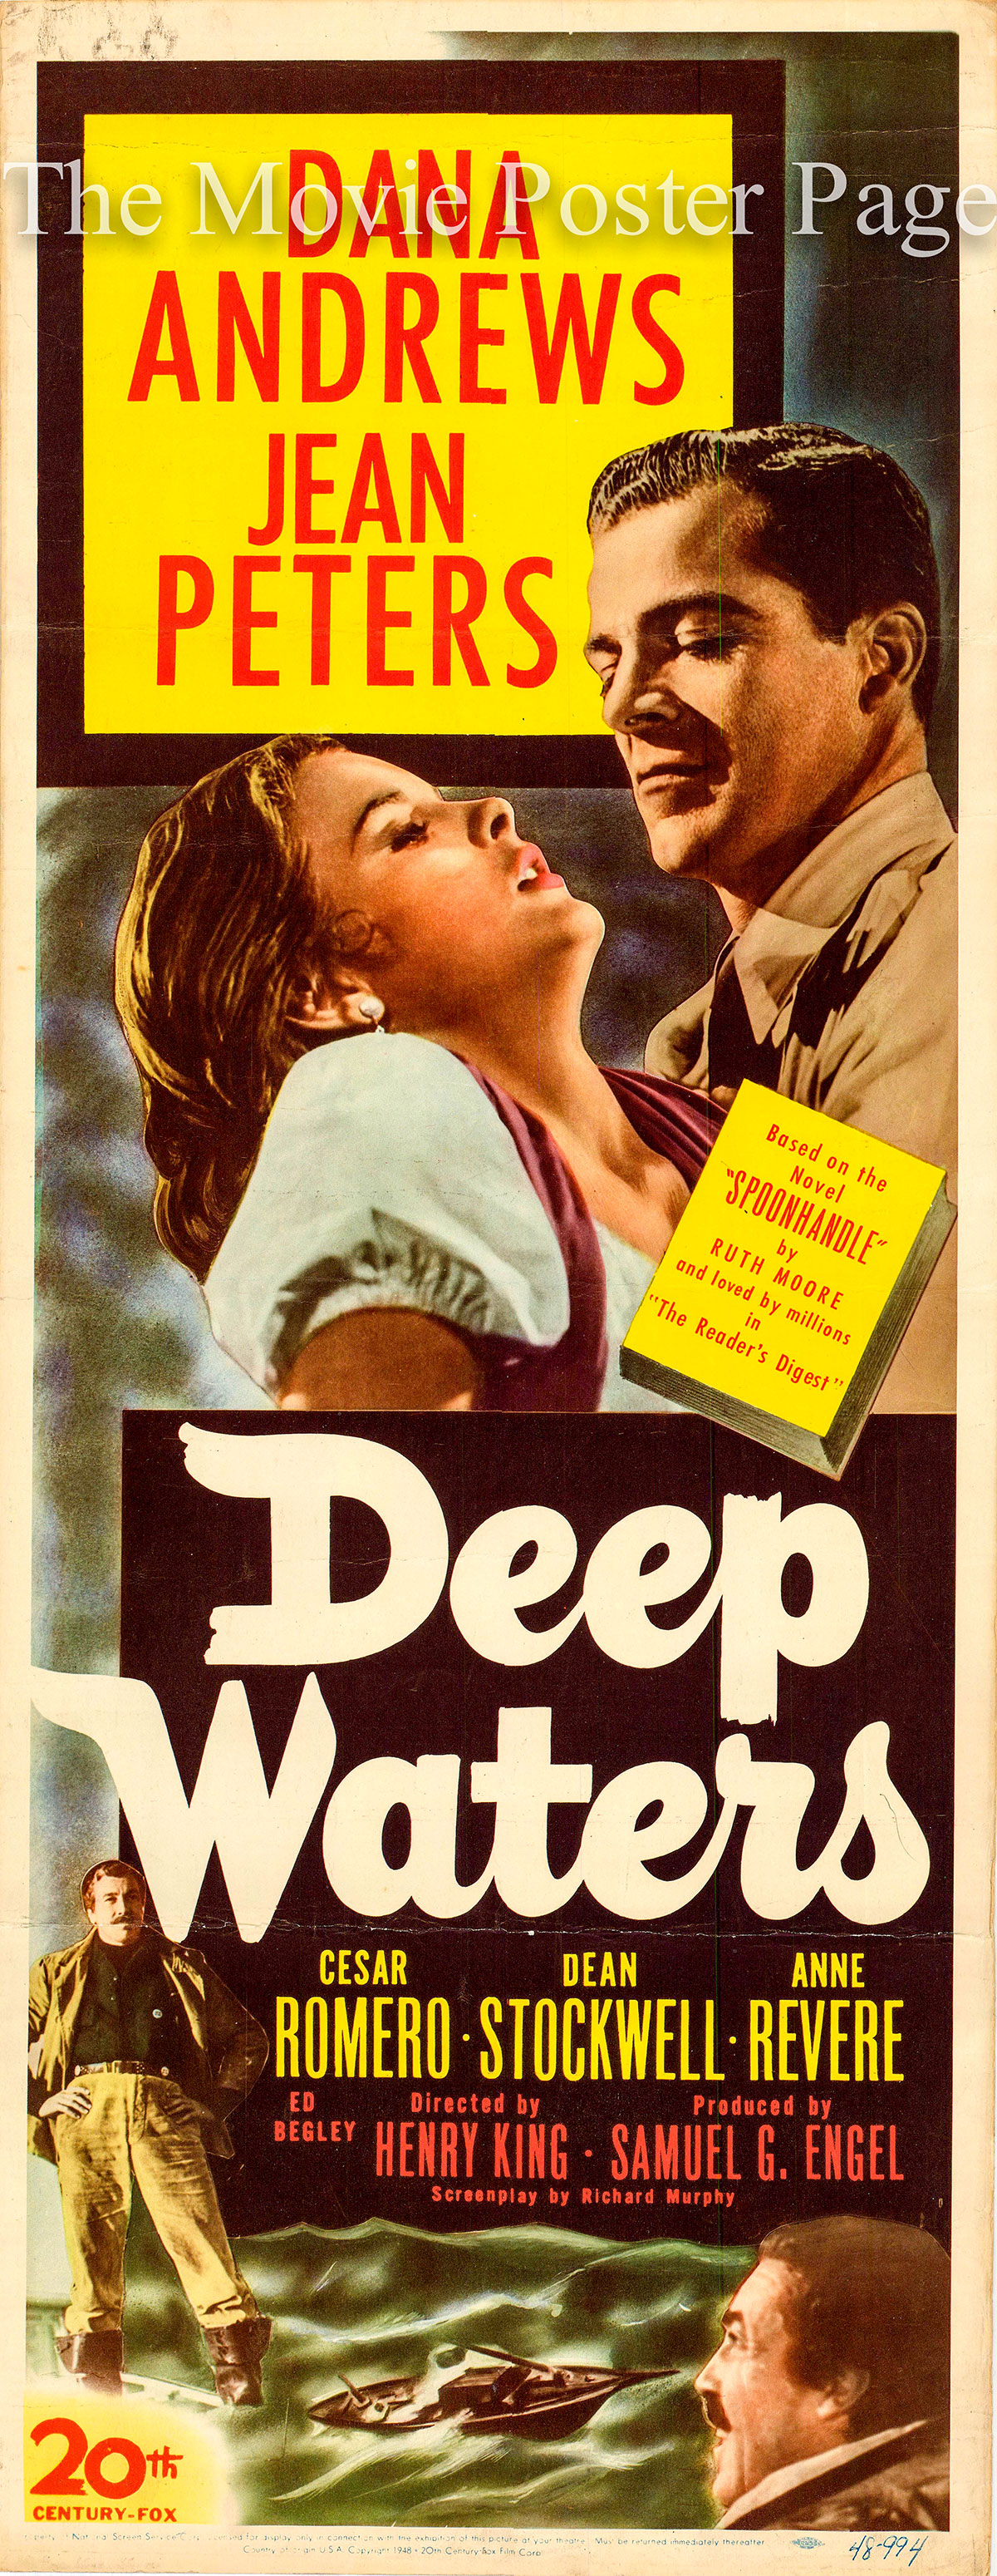 Pictured is a US insert poster for the 1948 Henry King film Deep Waters starring Dana Andrews as Hod Stillwell.